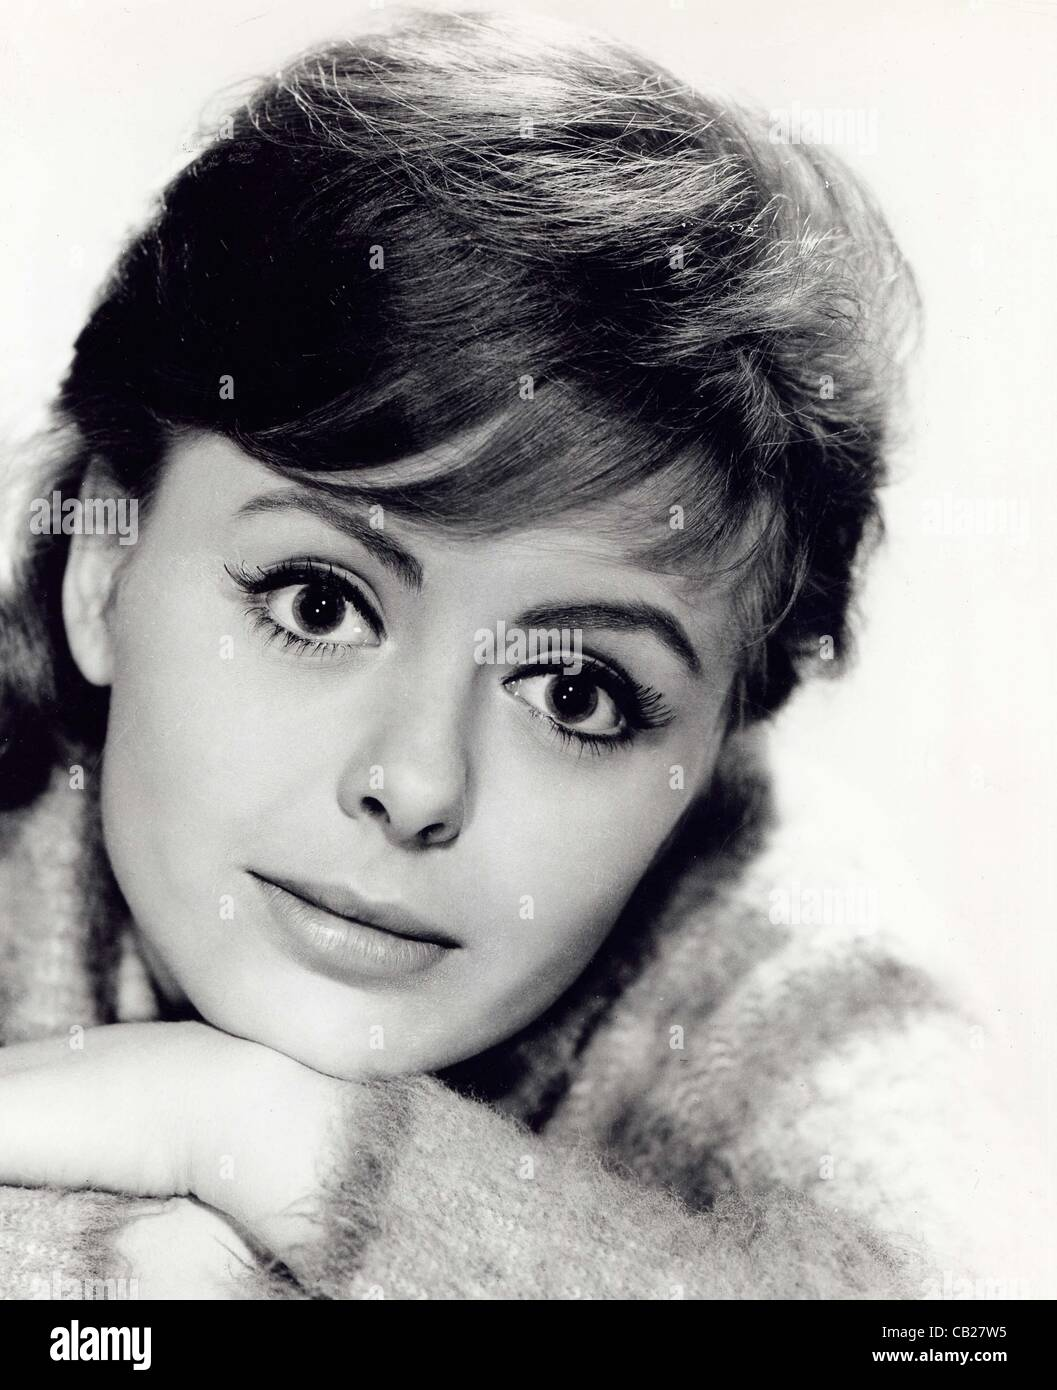 Deborah Walley Deborah Walley new images